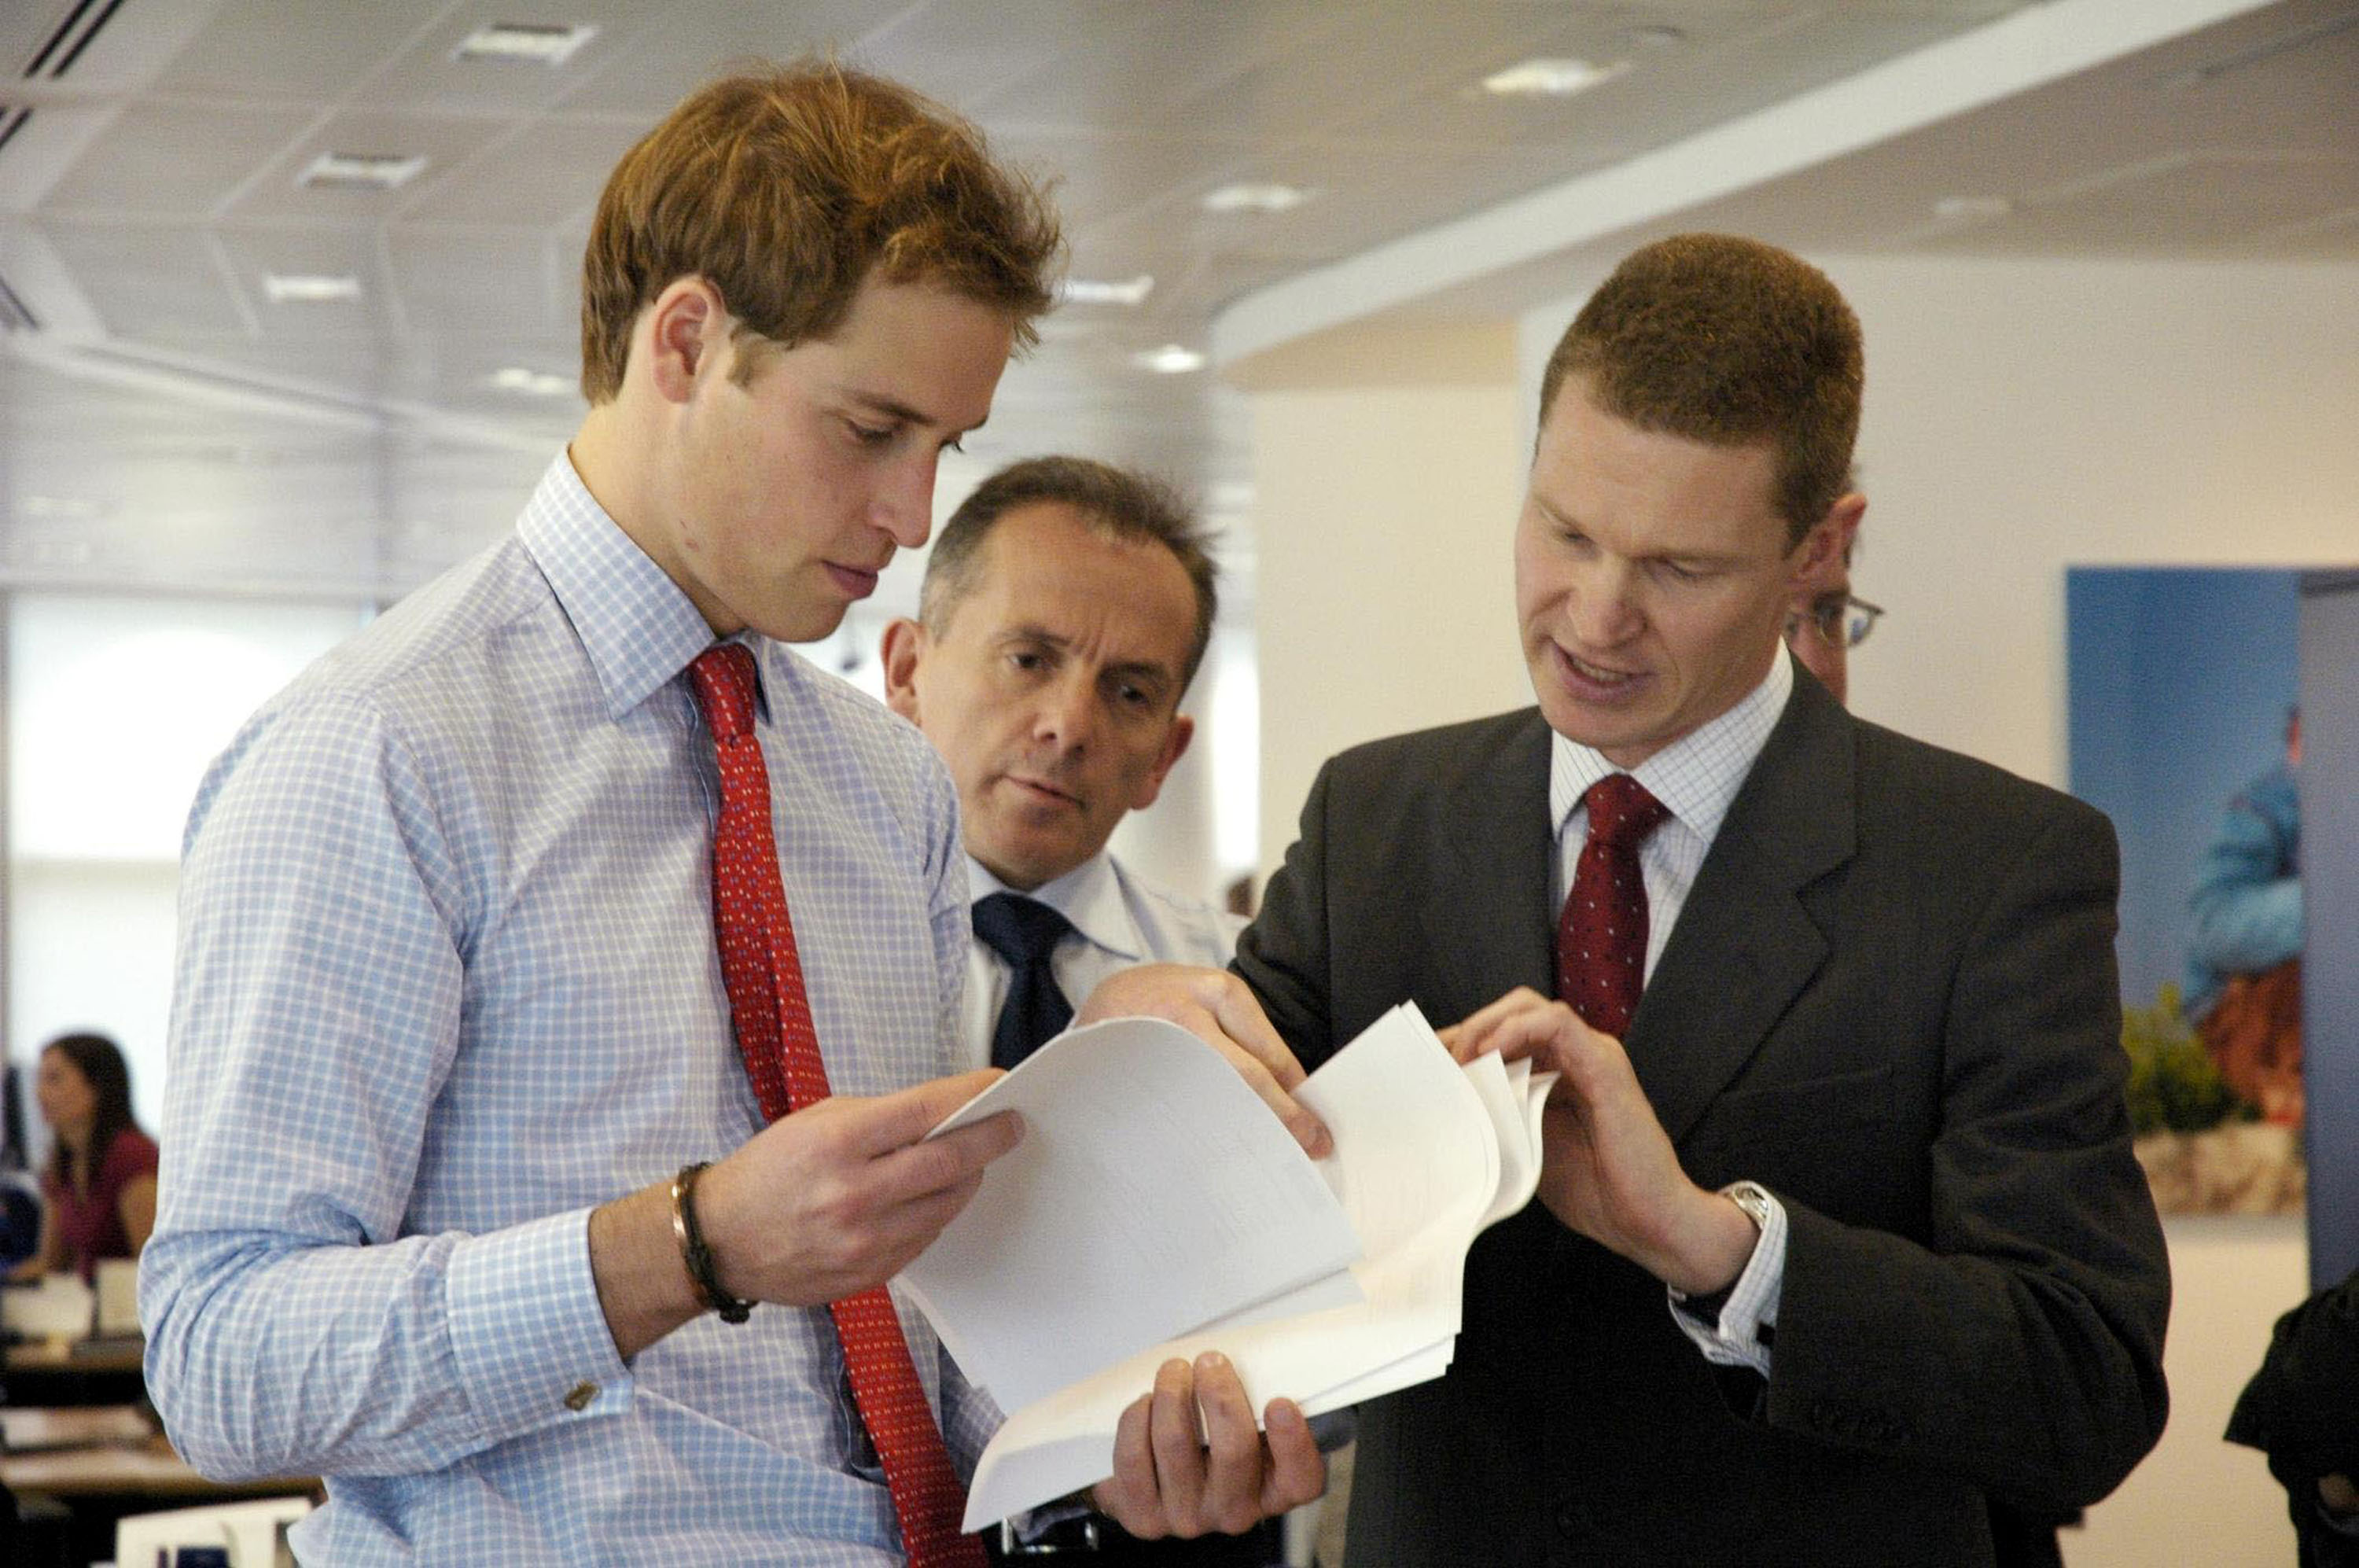 Prince William with Hiscox Plc MD, Steve Langan and James Standen of Aon look at fine art risks at the specialist insurance company's office in London Wednesday November 16 2005. (Photo by Anwar Hussein Collection/ROTA/WireImage)